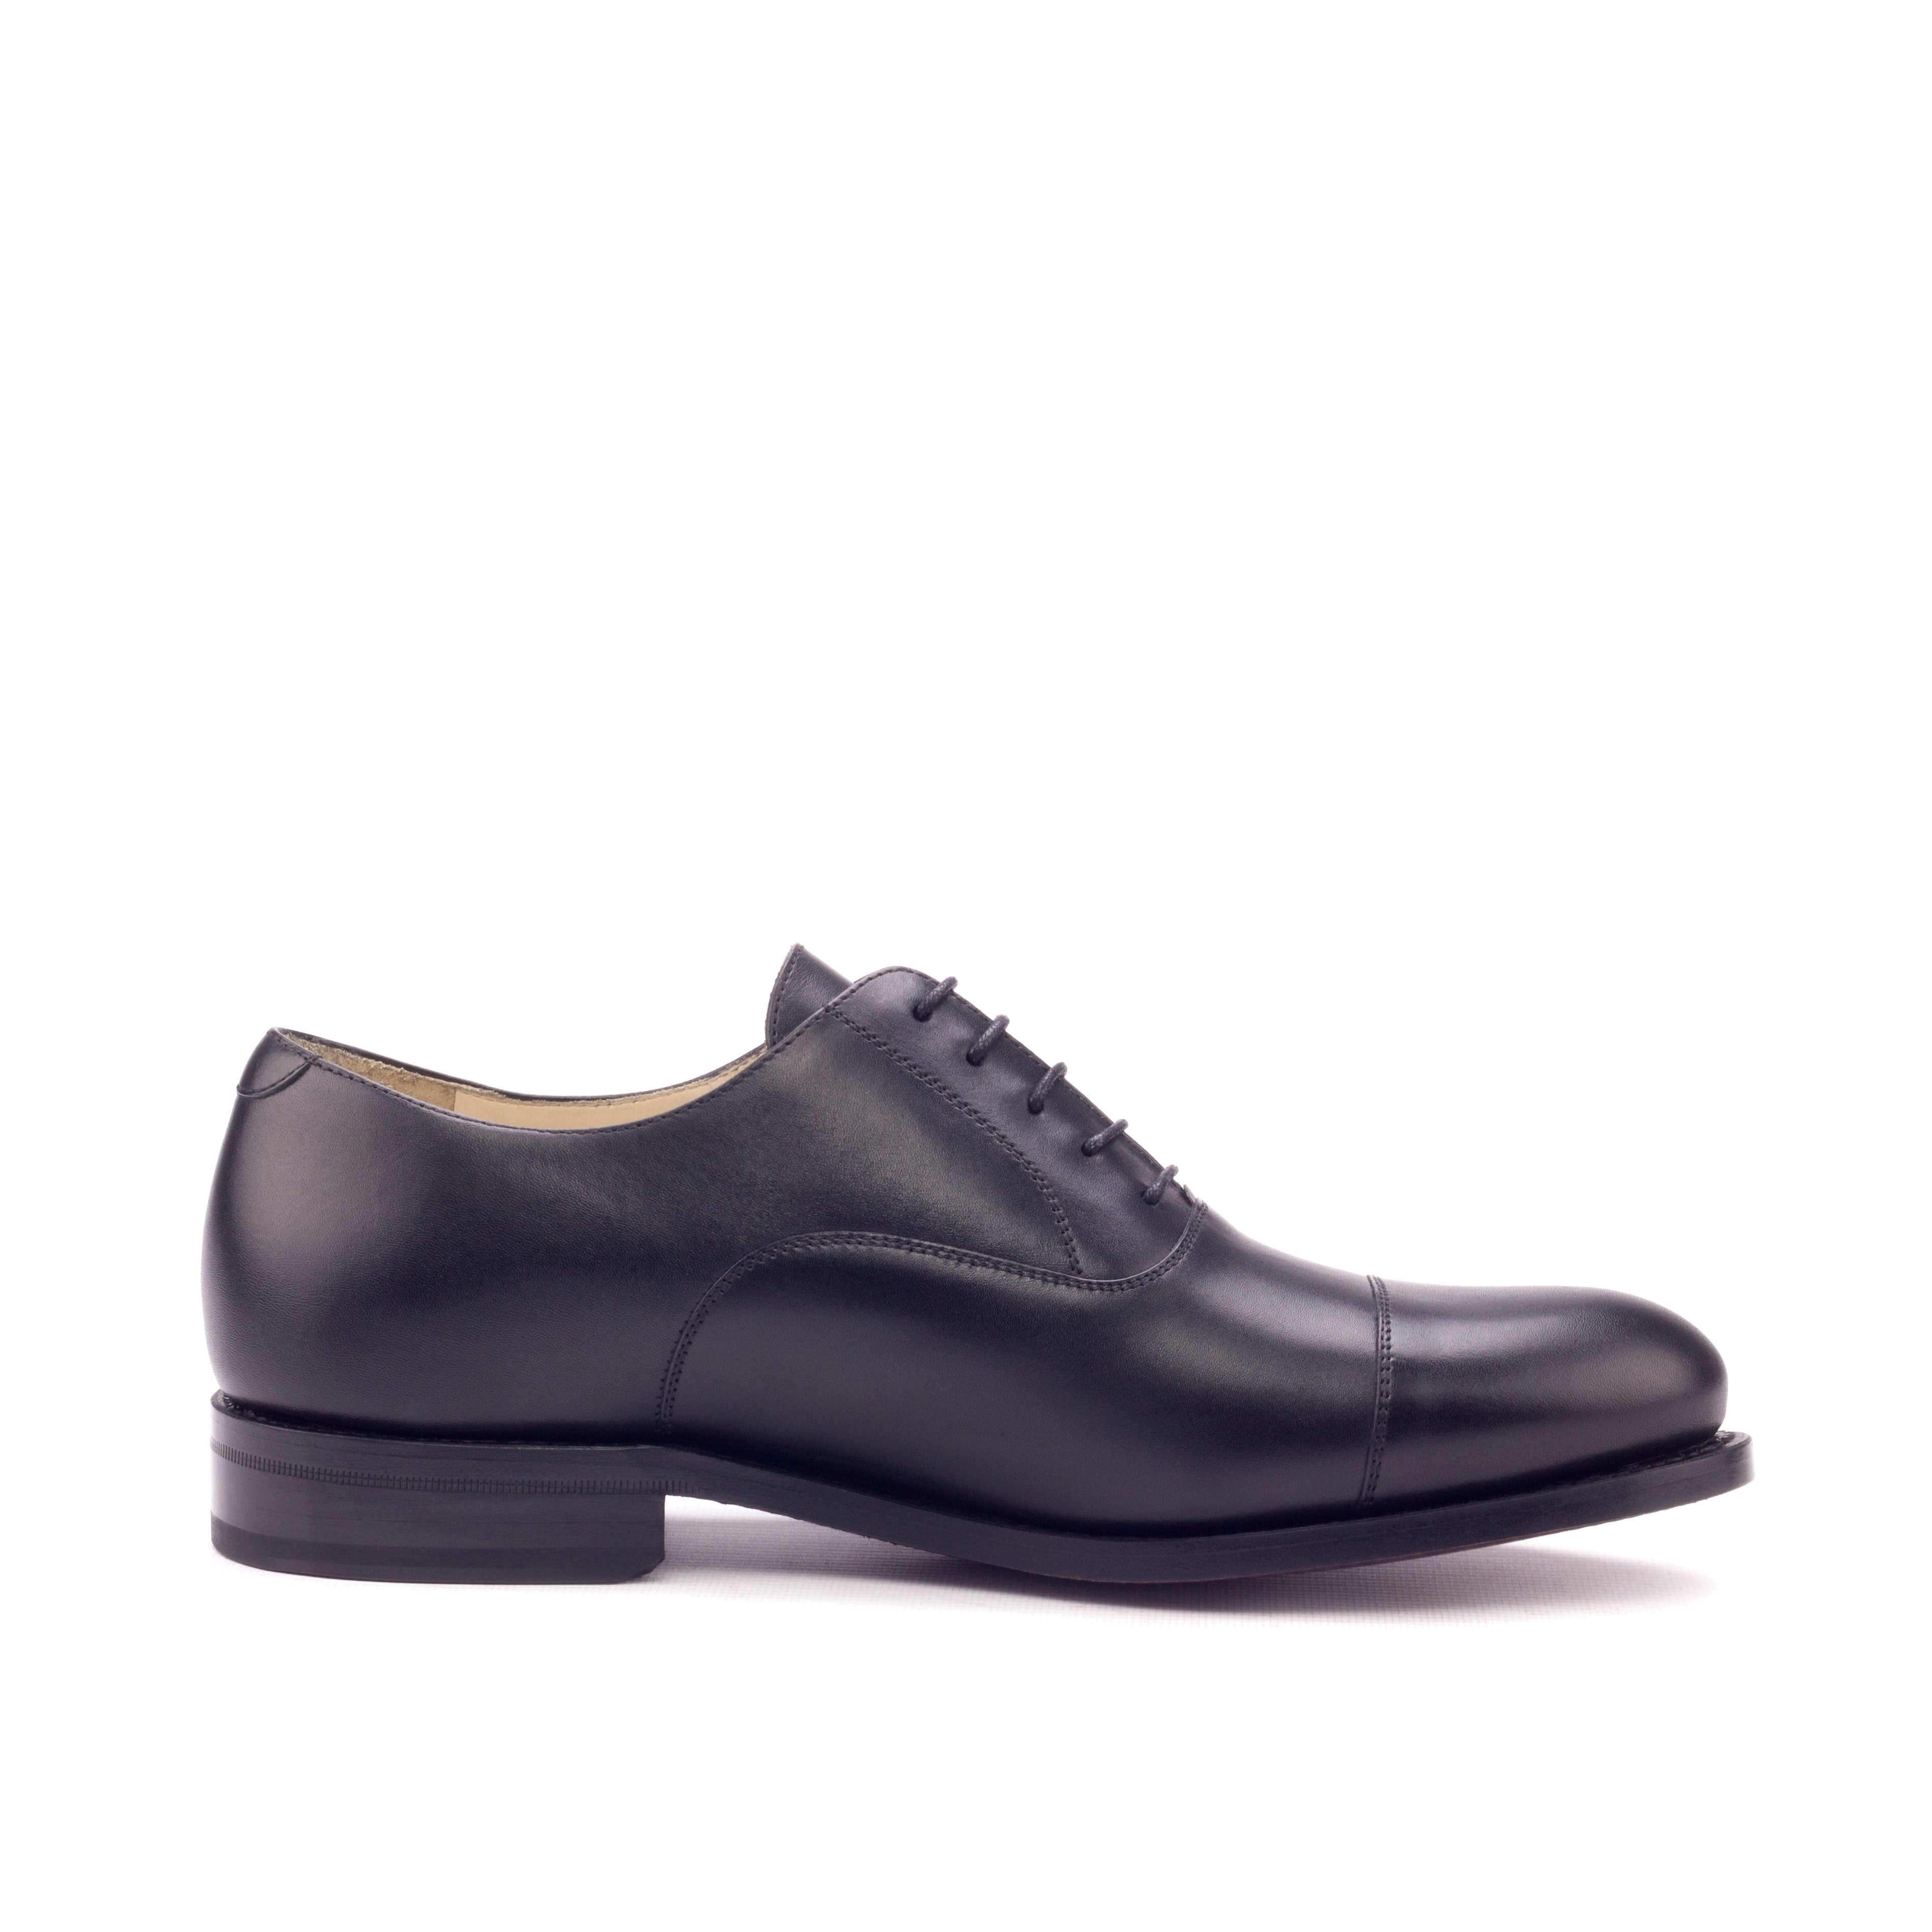 Goodyear welted black Oxfords